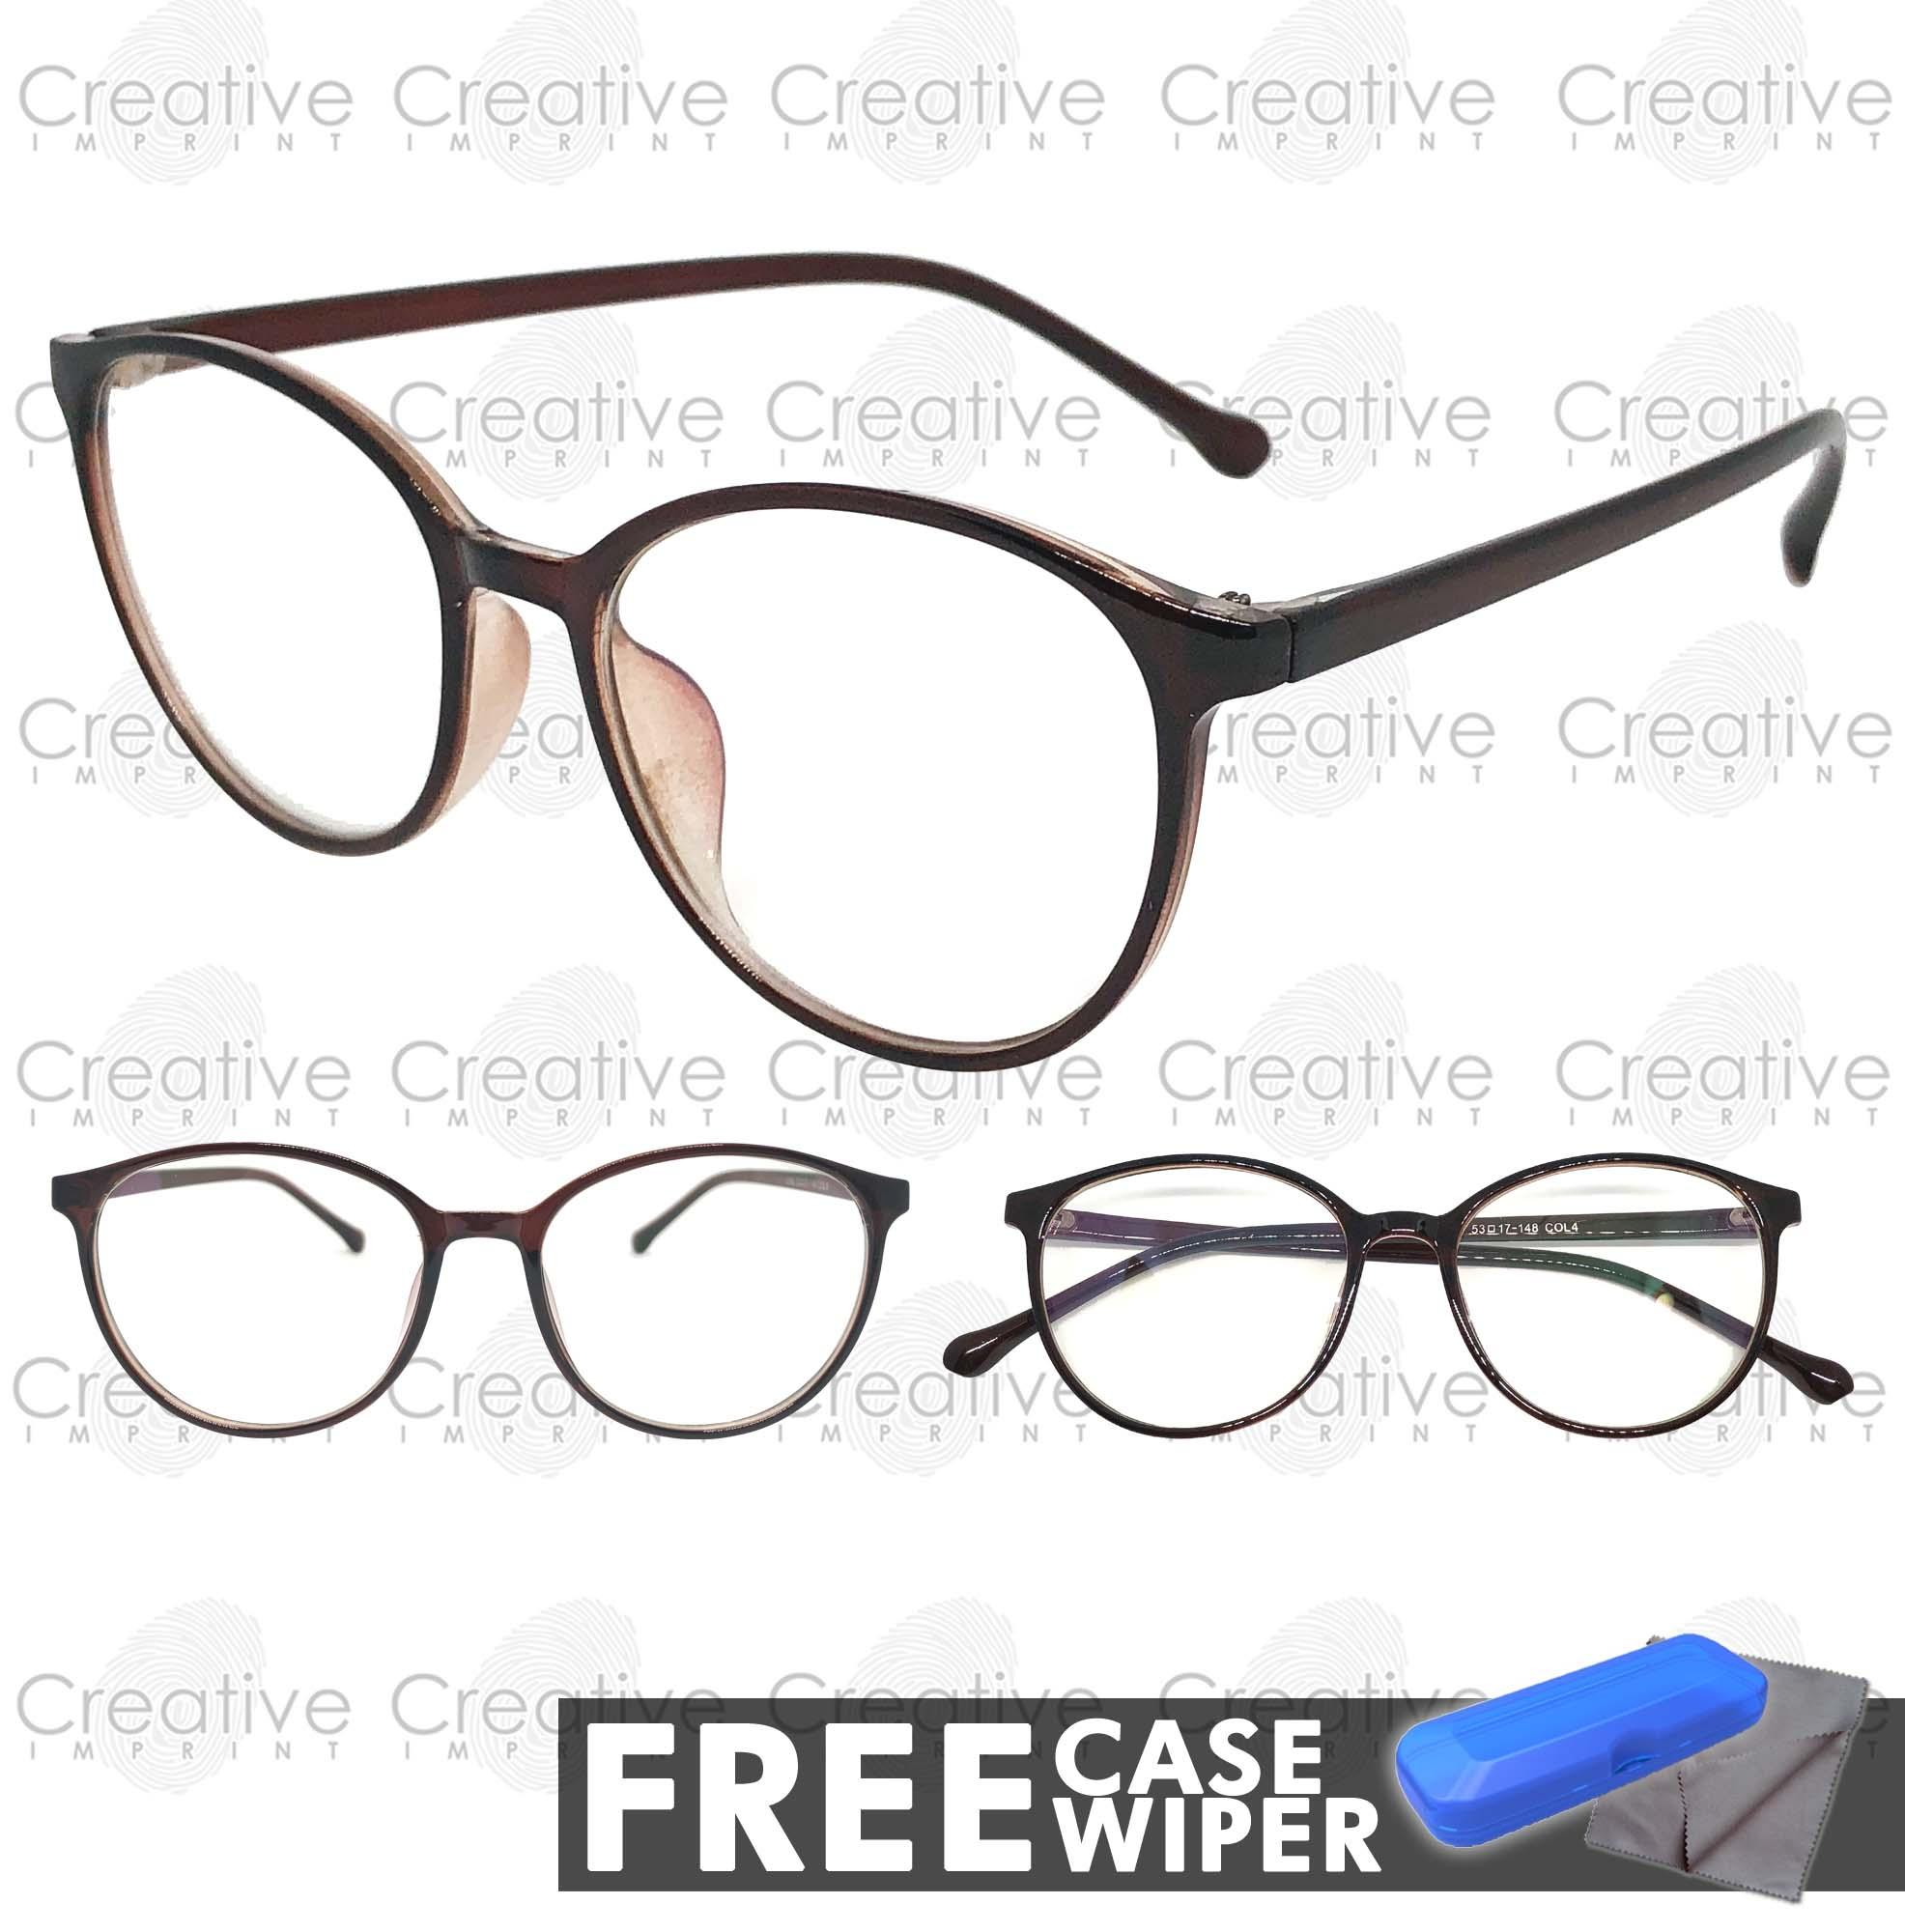 d2f29e8047 Creative Imprint Eyeglasses Anti-Radiation Lens ( 05 Brown) Anti-Fatigue  Anti